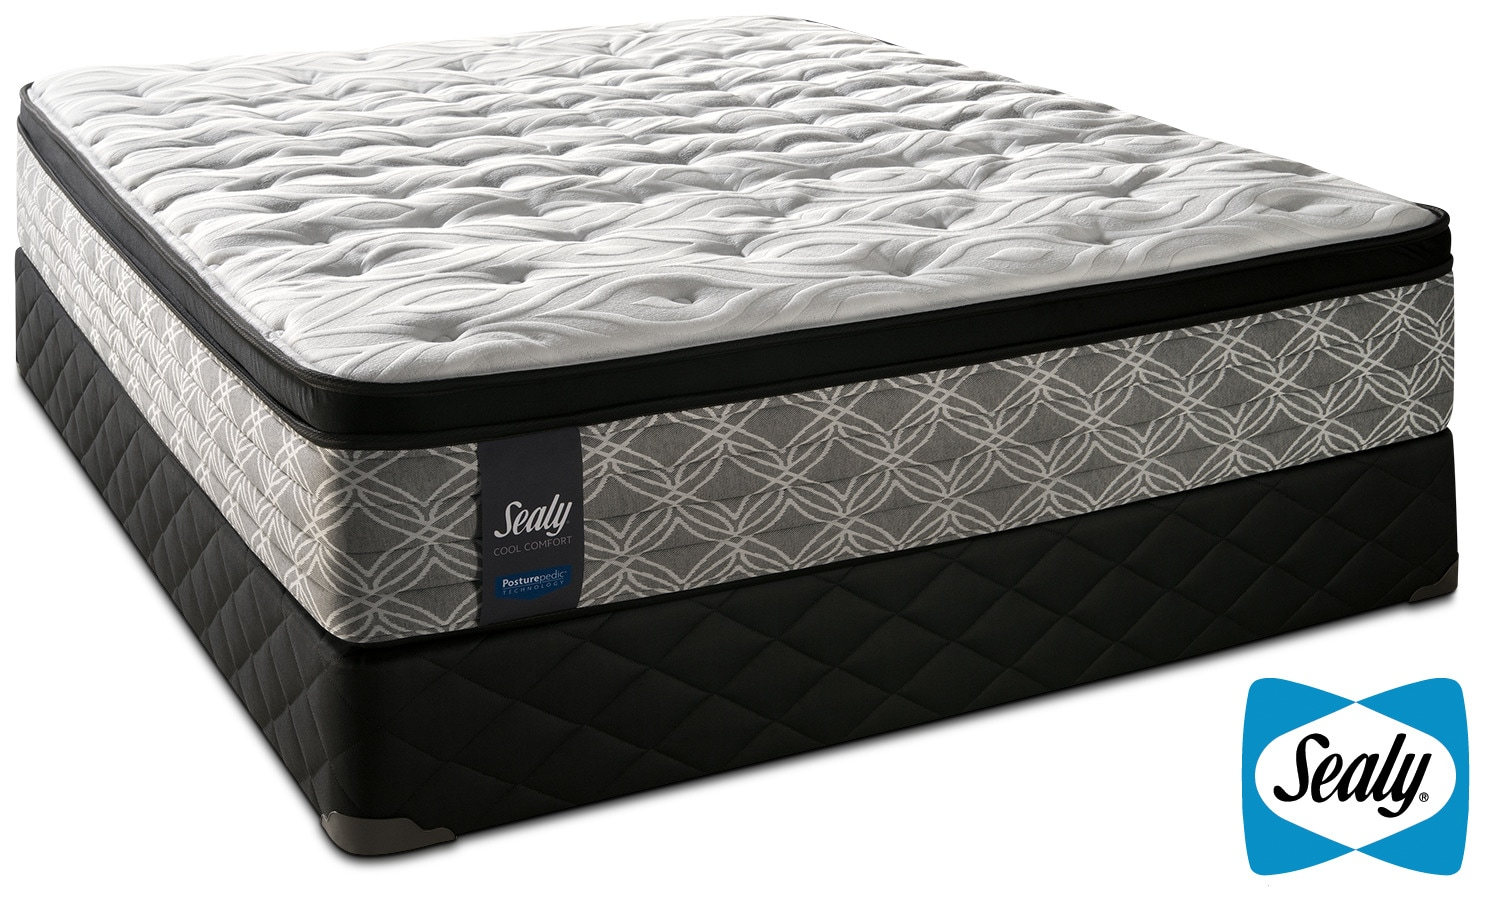 sealy super nova cushion firm full mattress and boxspring set